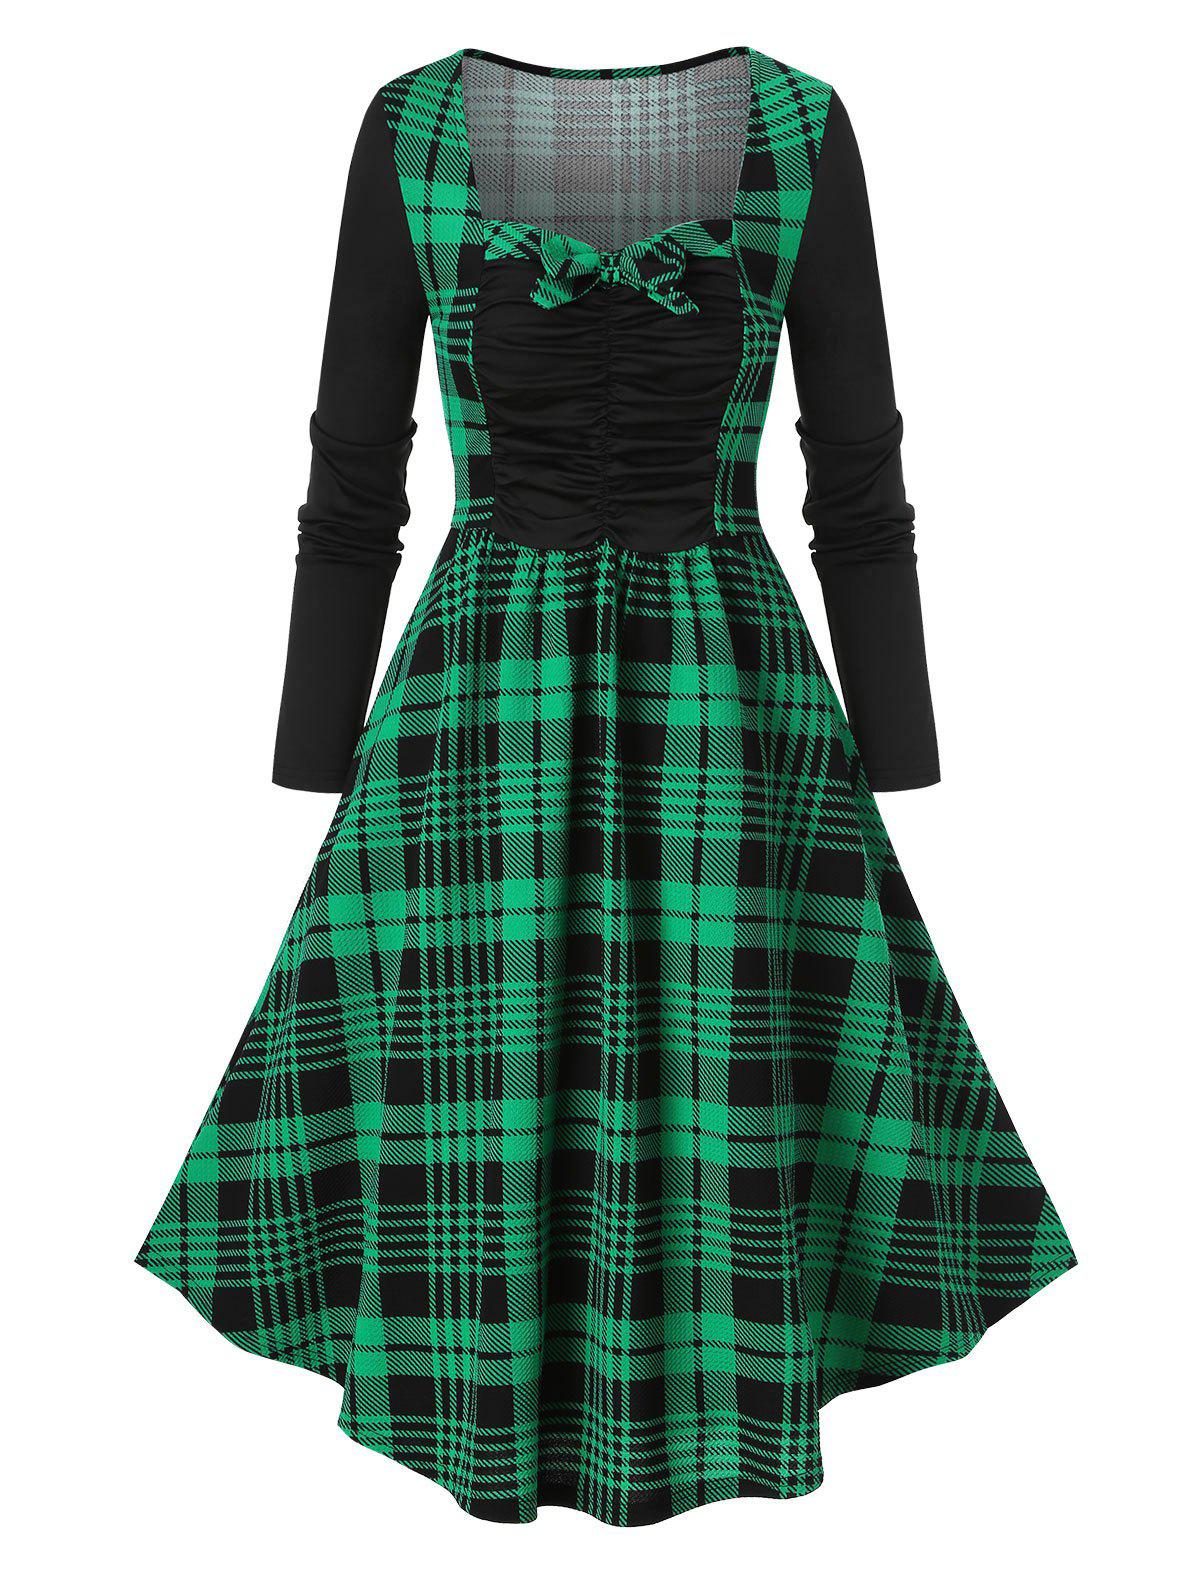 Plaid Print Bowknot Ruched Vintage Dress - DEEP GREEN 3XL